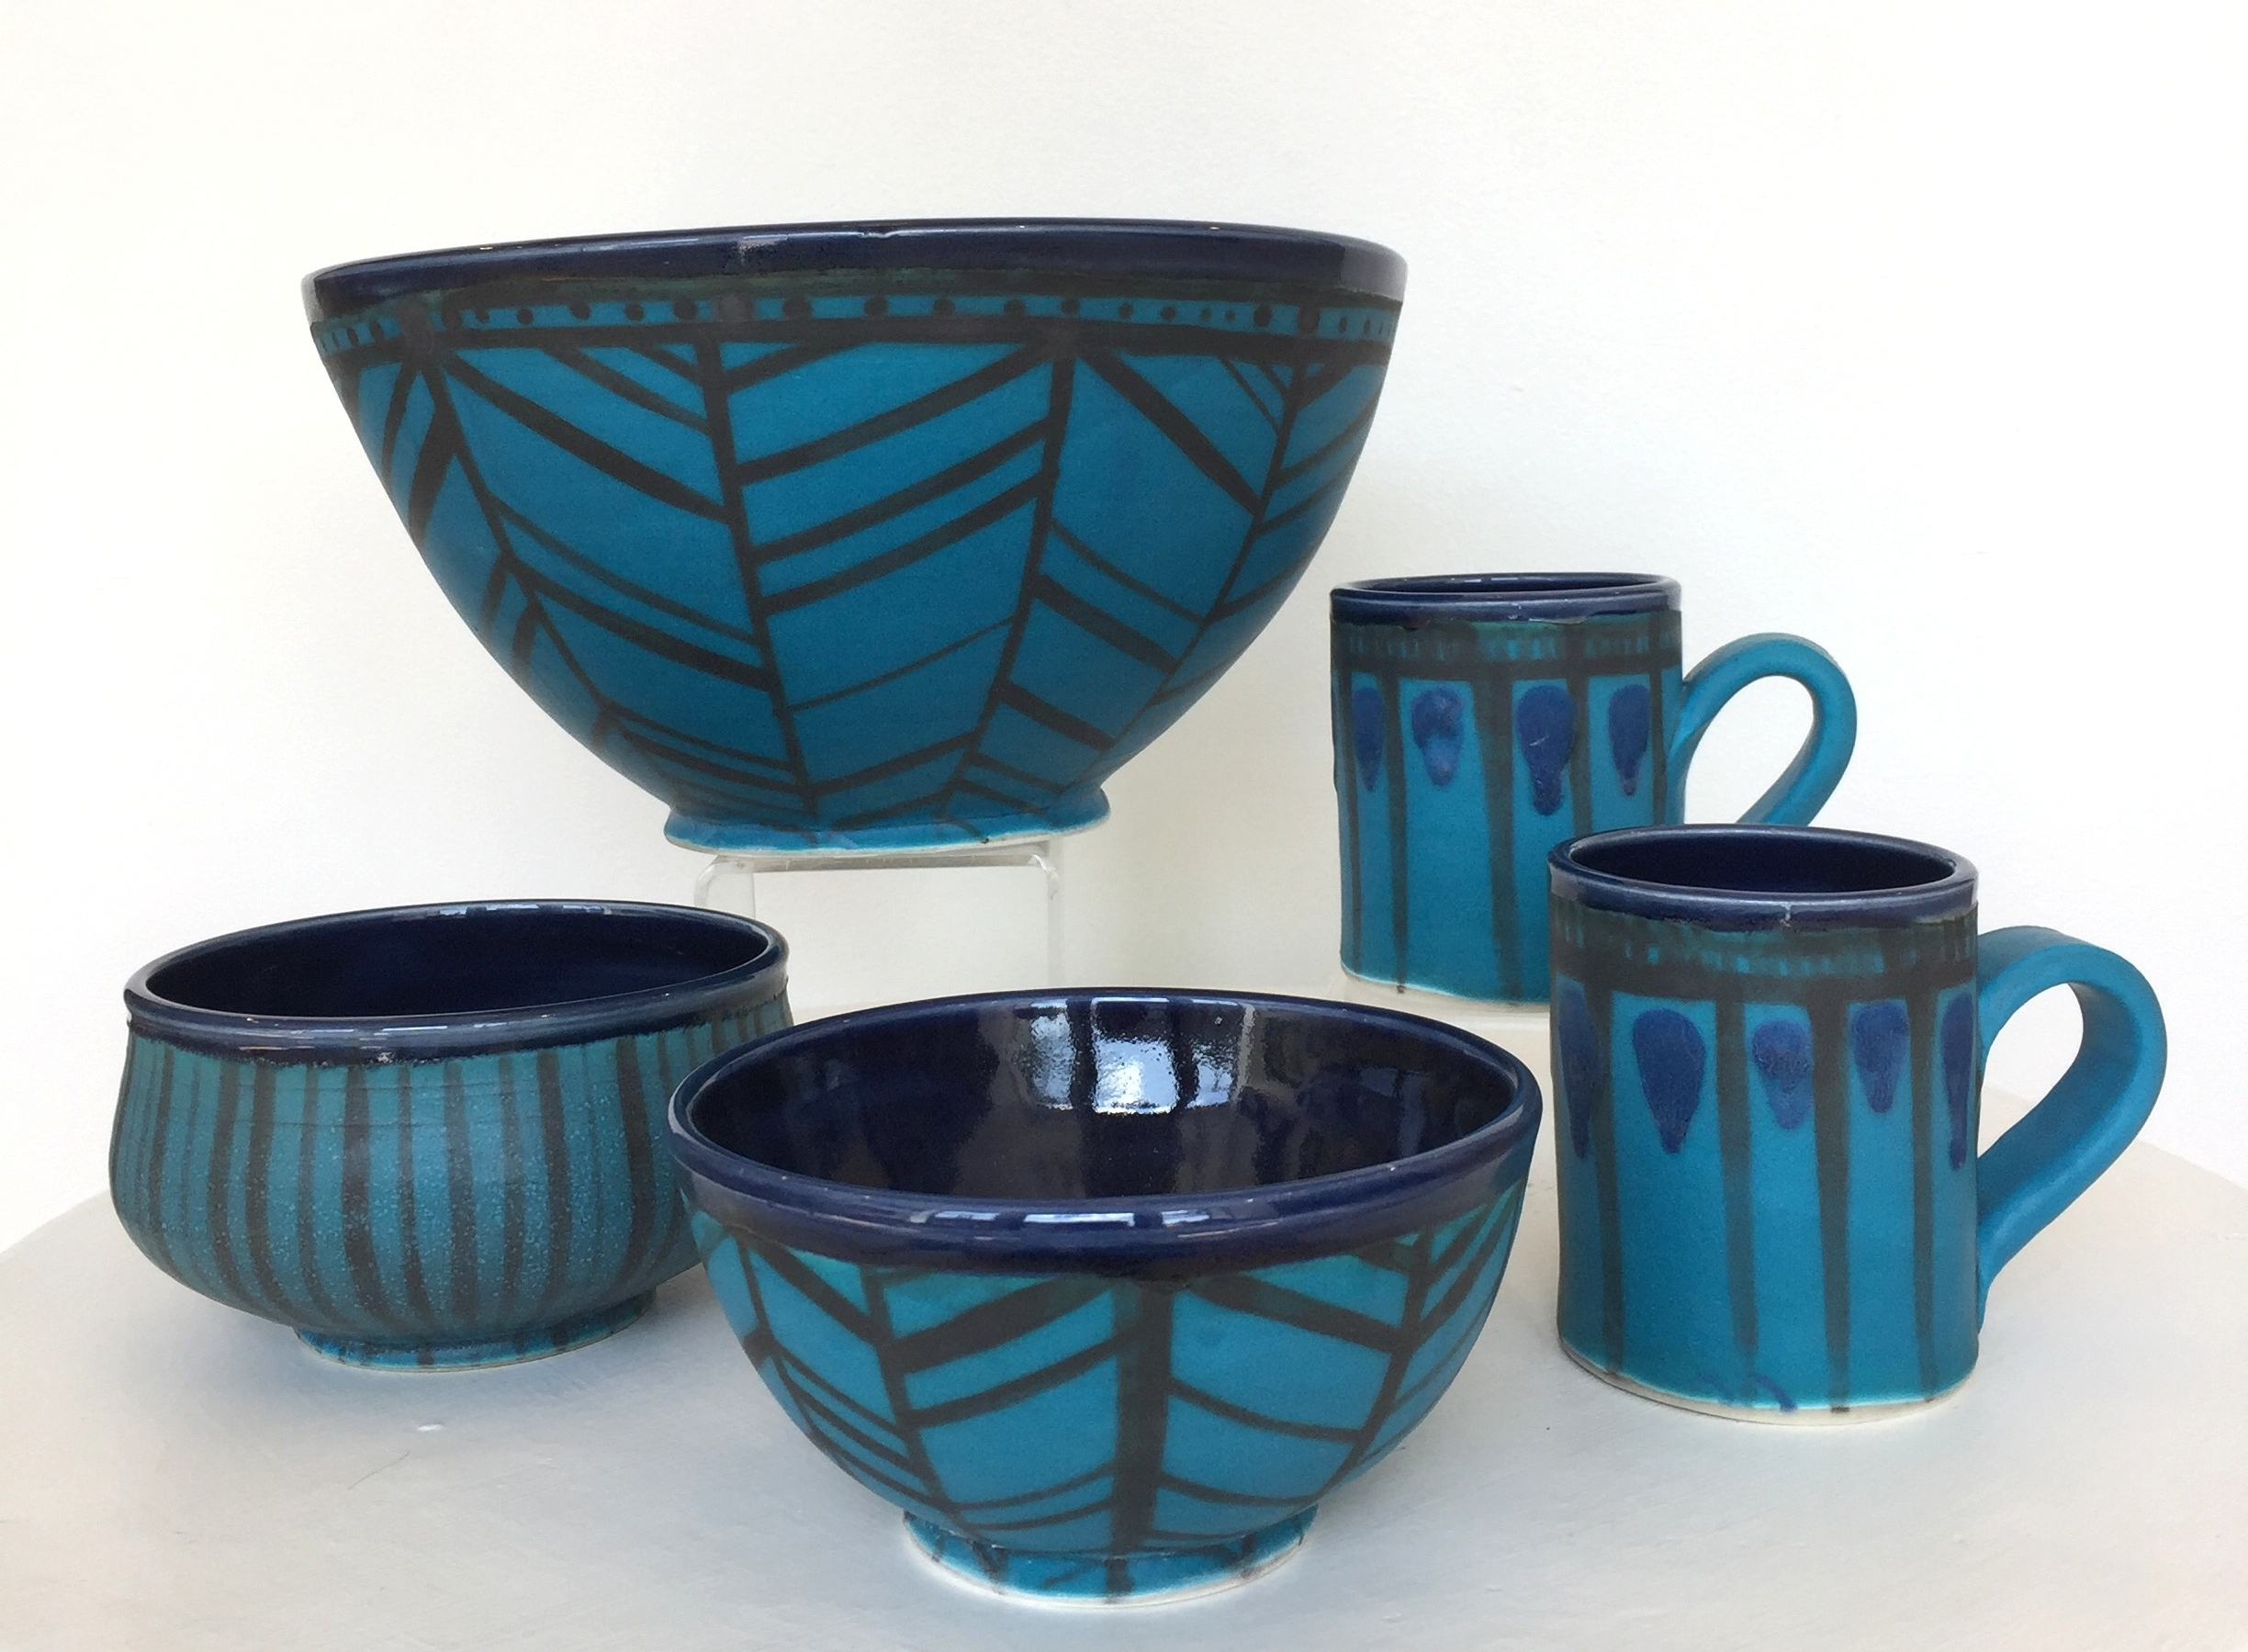 Ceramic bowls and mugs with turquoise exterior and navy interior, herringbone, stripe, and abstract patterns, $38-$150